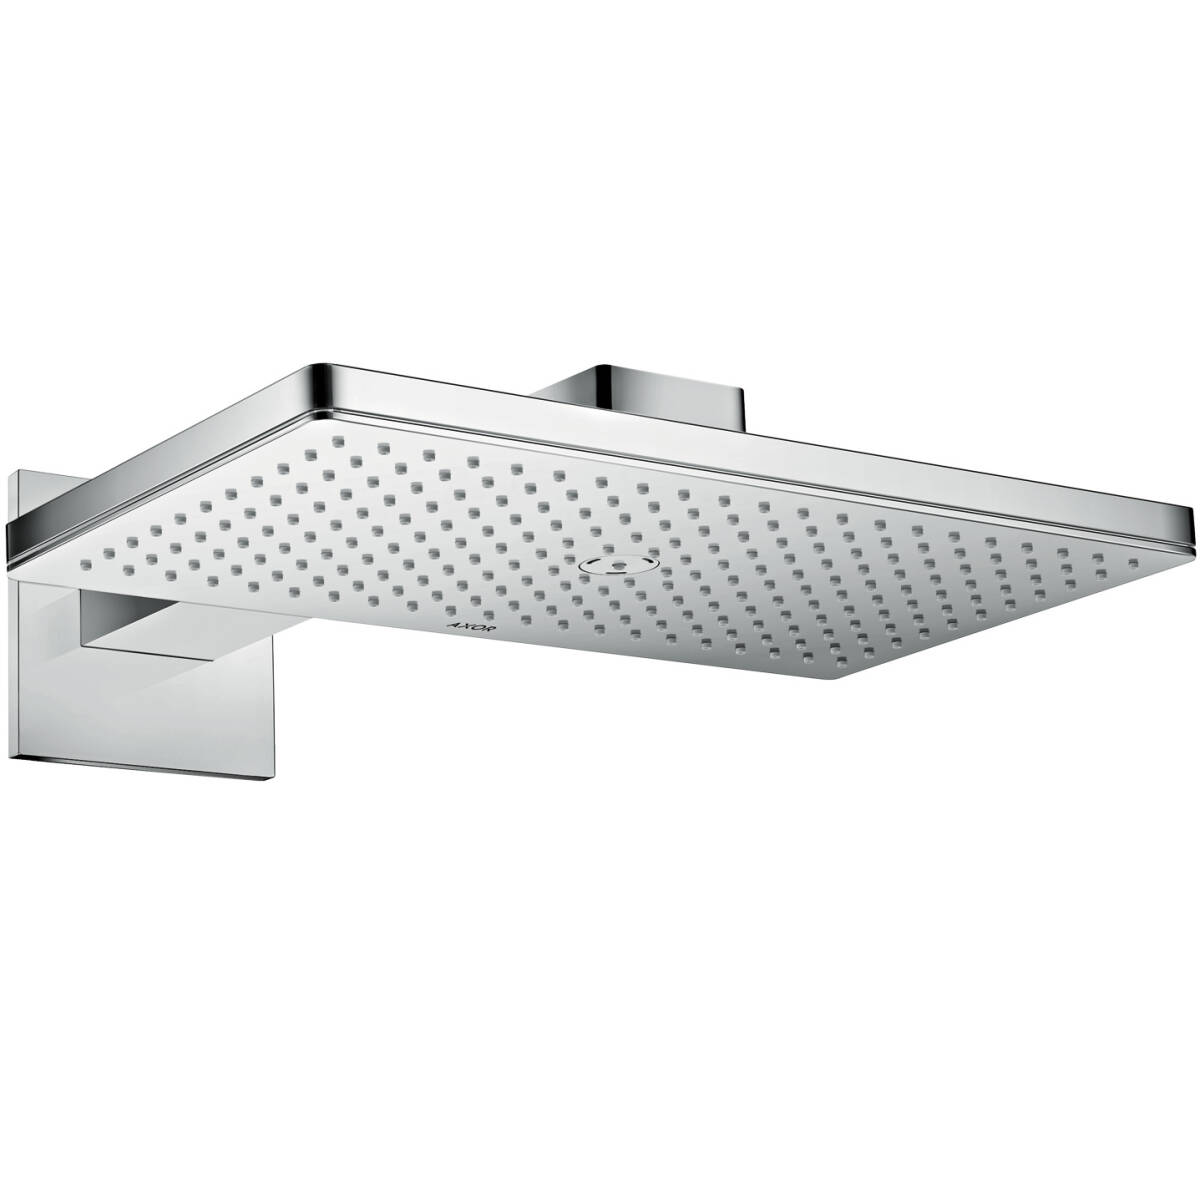 Overhead shower 460/300 1jet with shower arm and square escutcheons, Chrome, 35278000